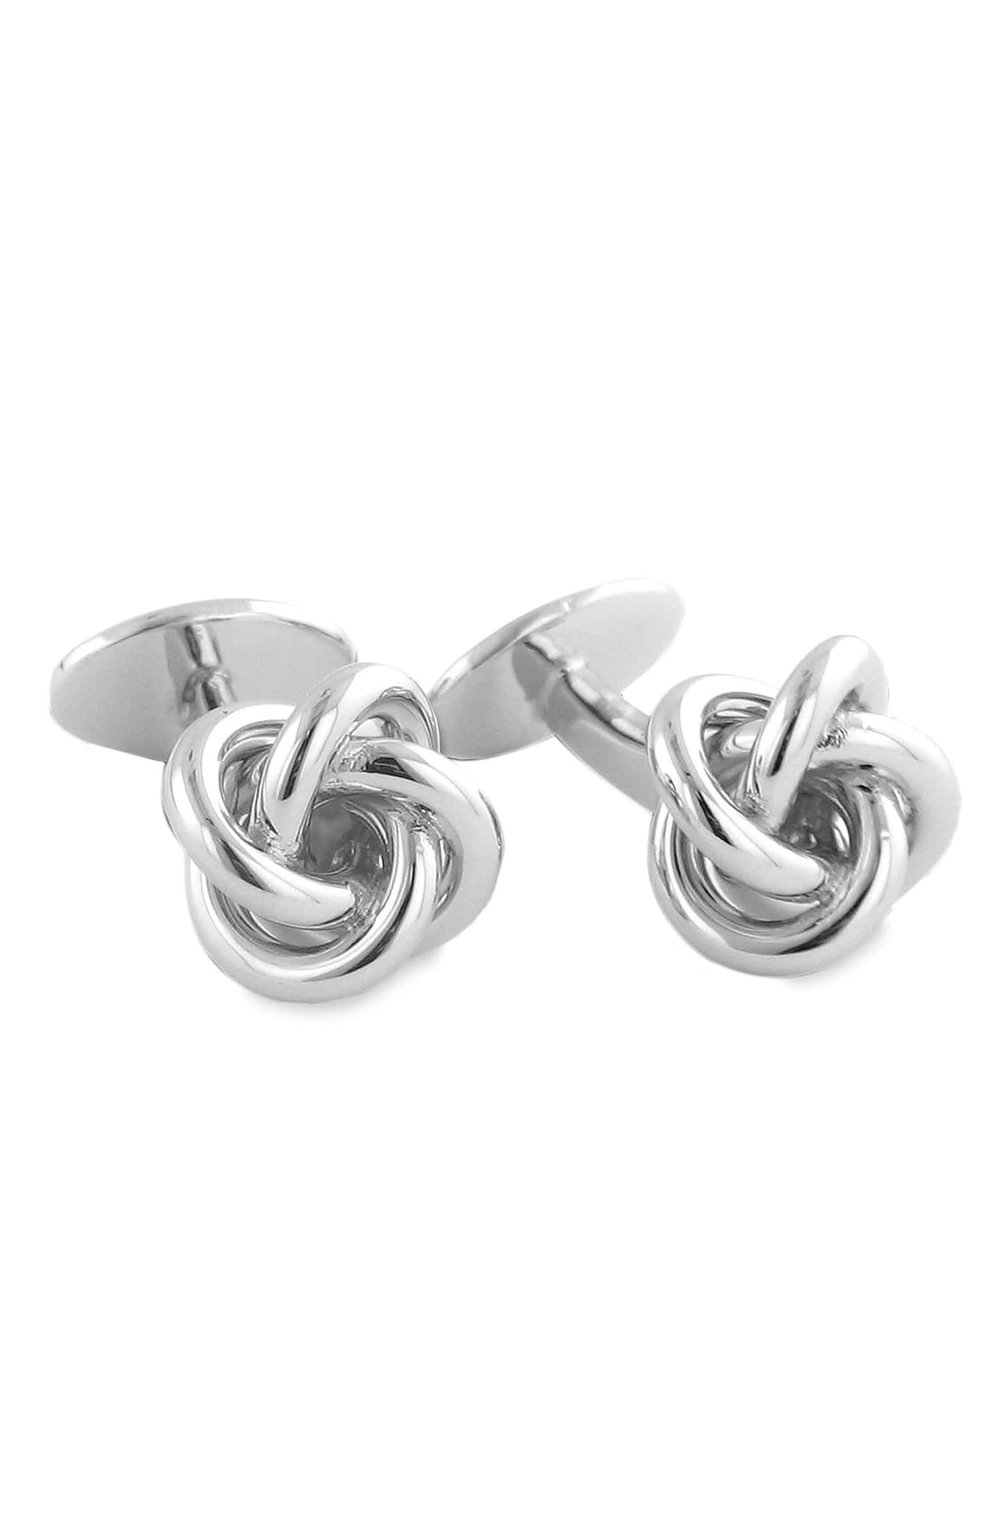 knot cuff links - These cuff links are beautiful and a great price for a long time item.